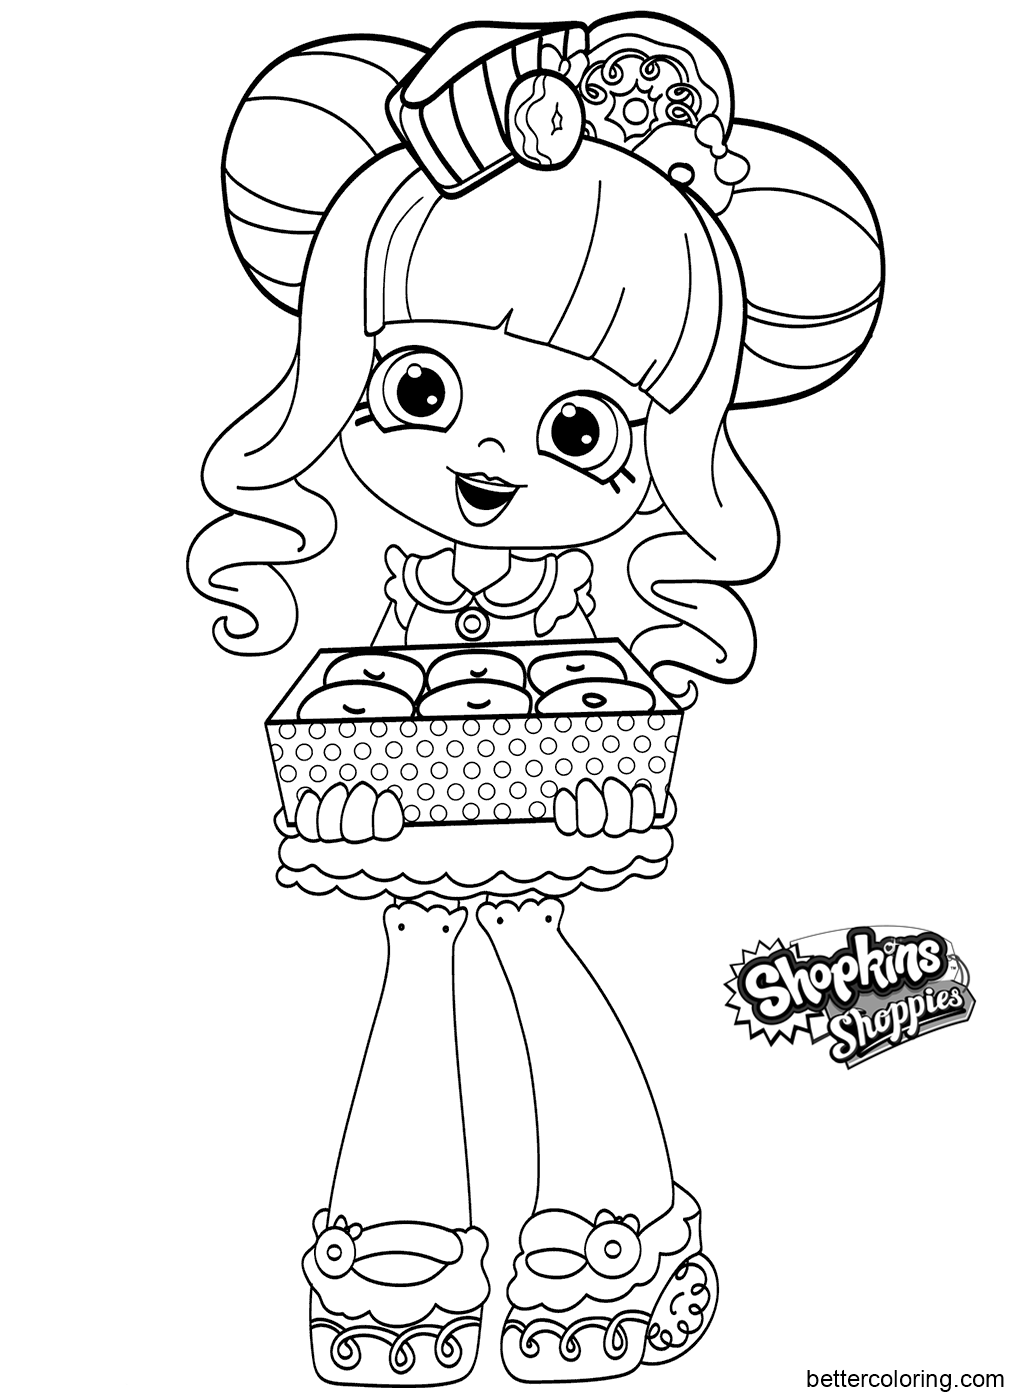 Free Shoppies Coloring Pages Black and White printable